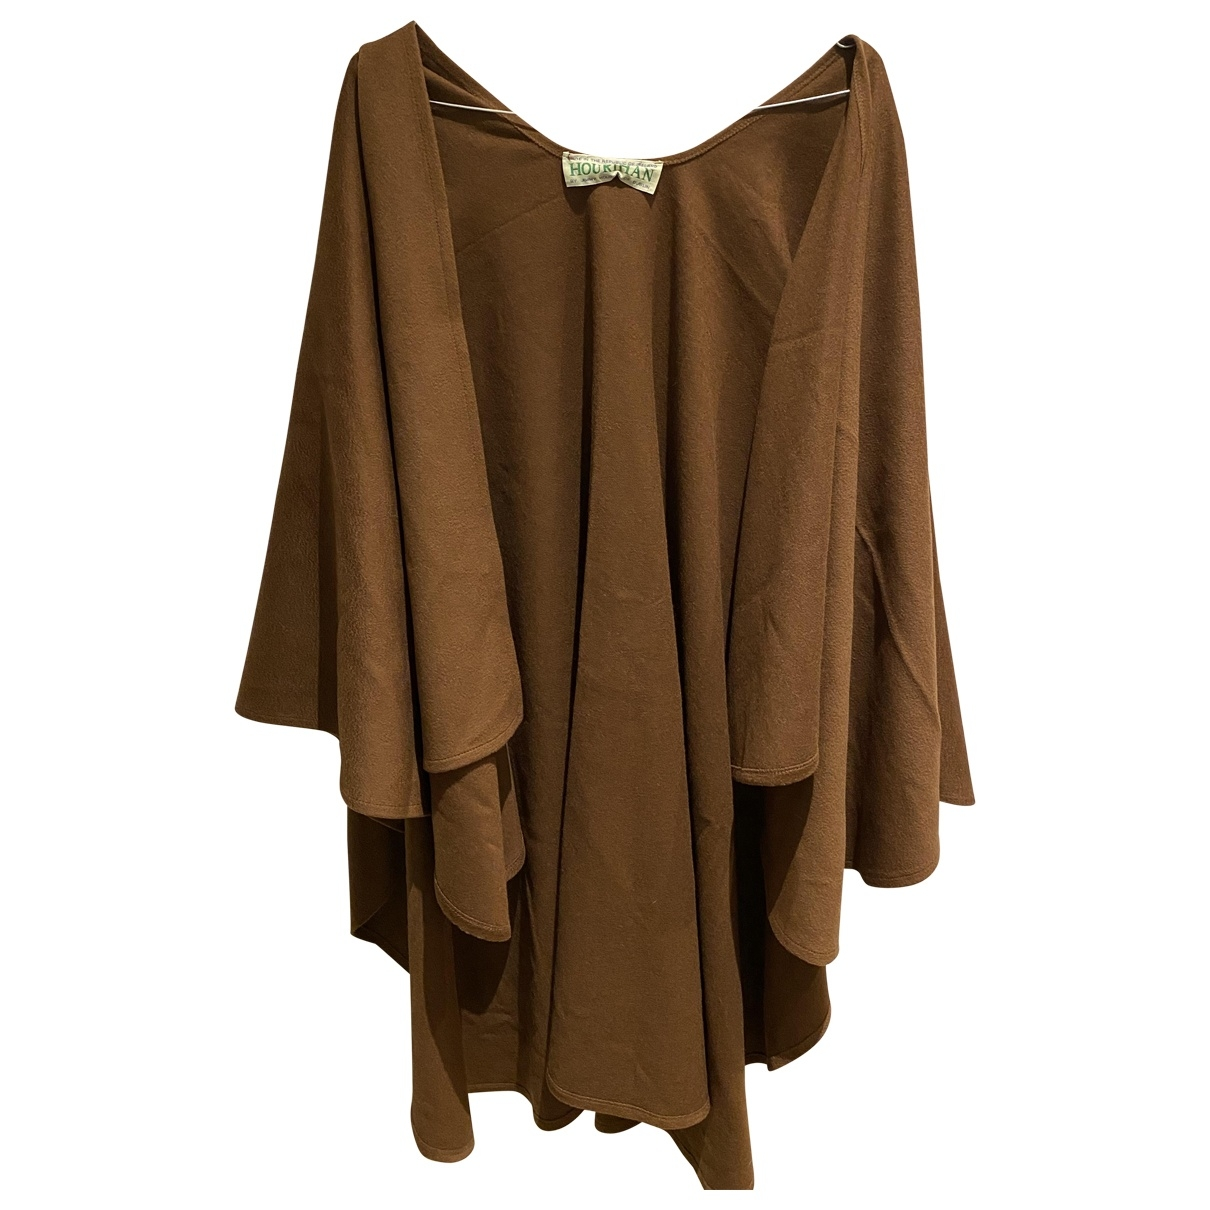 Non Signé / Unsigned \N Brown Wool jacket for Women One Size FR